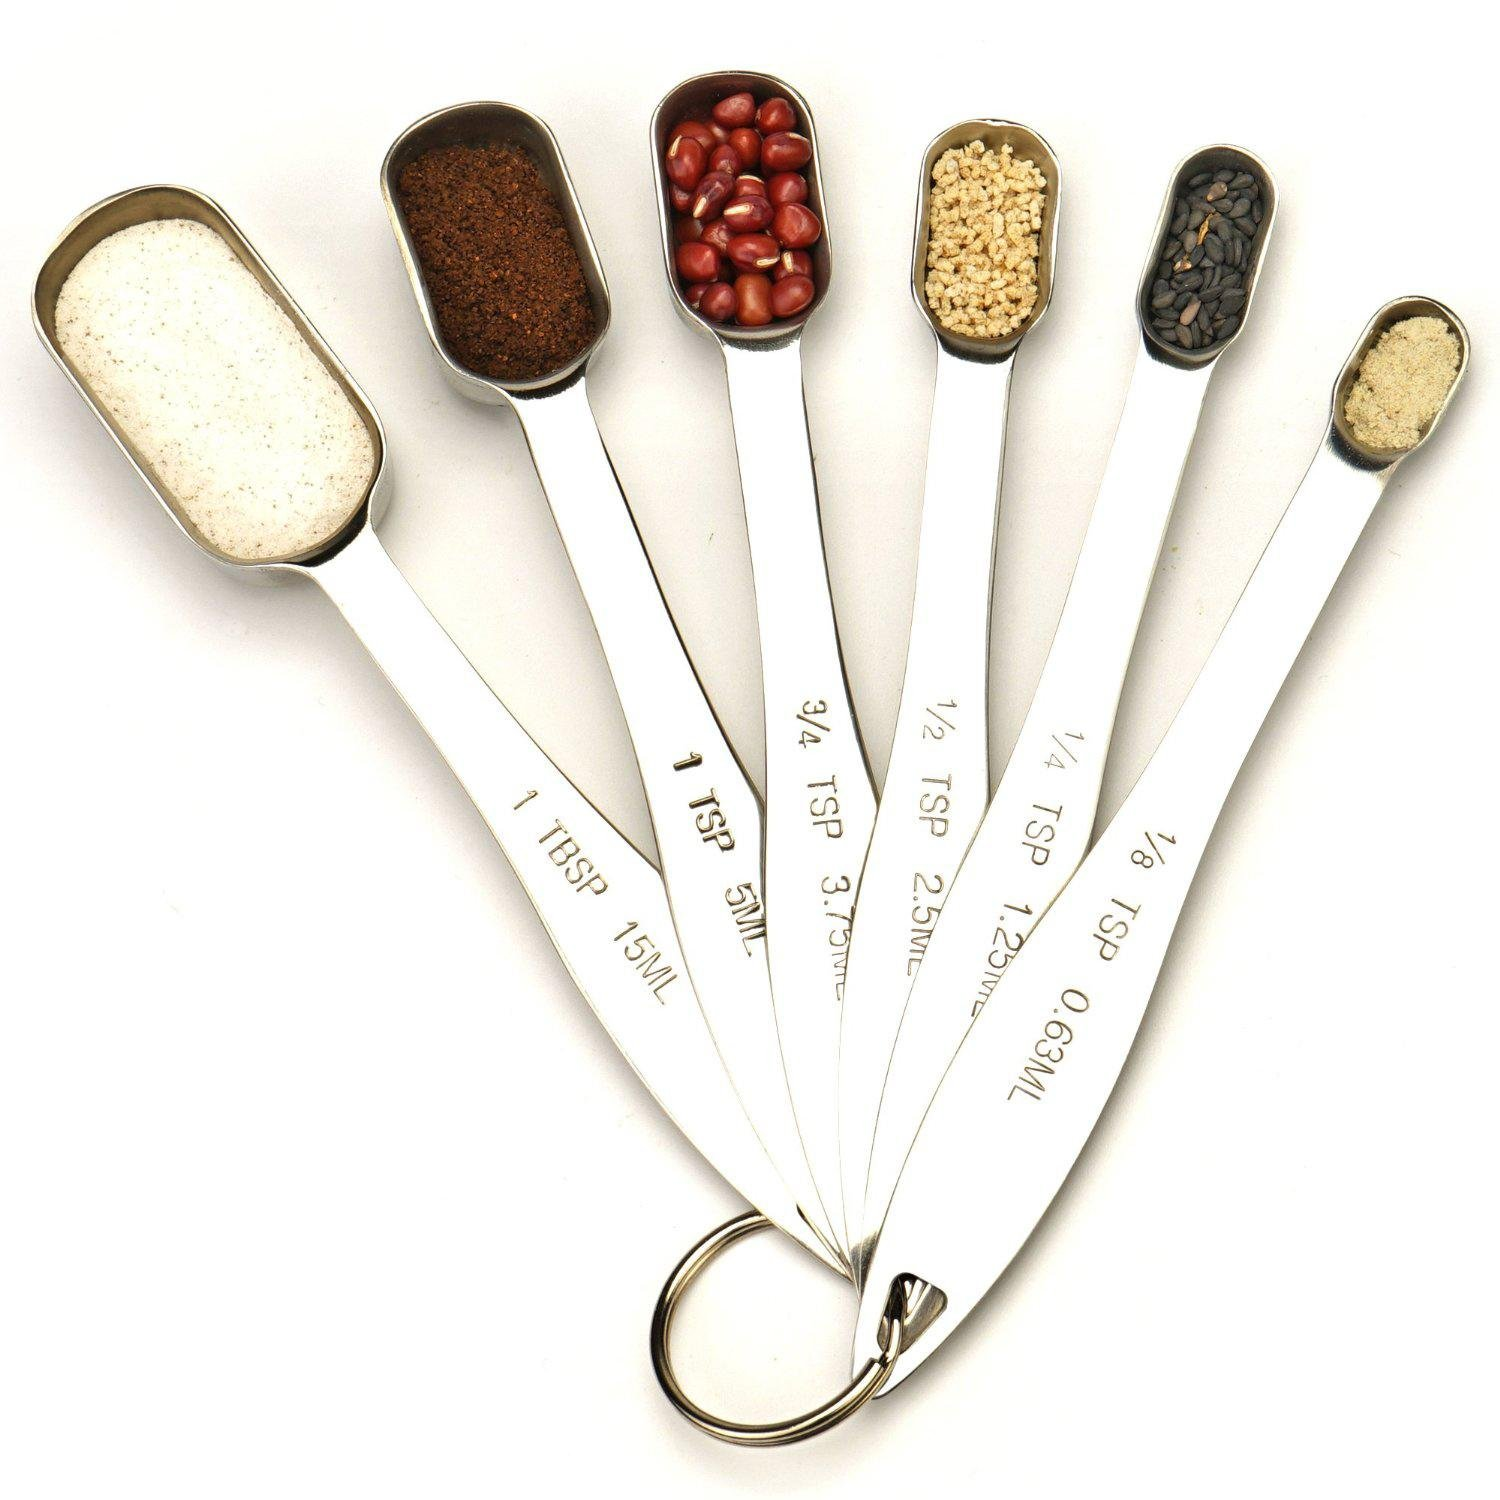 KOBWA Stainless Steel Measuring Spoons,Set of 6 Measuring Spoons for Dry & Liquid Ingredients Narrow Shape to Fit in Spice Jars with Engraved,Round,Silver